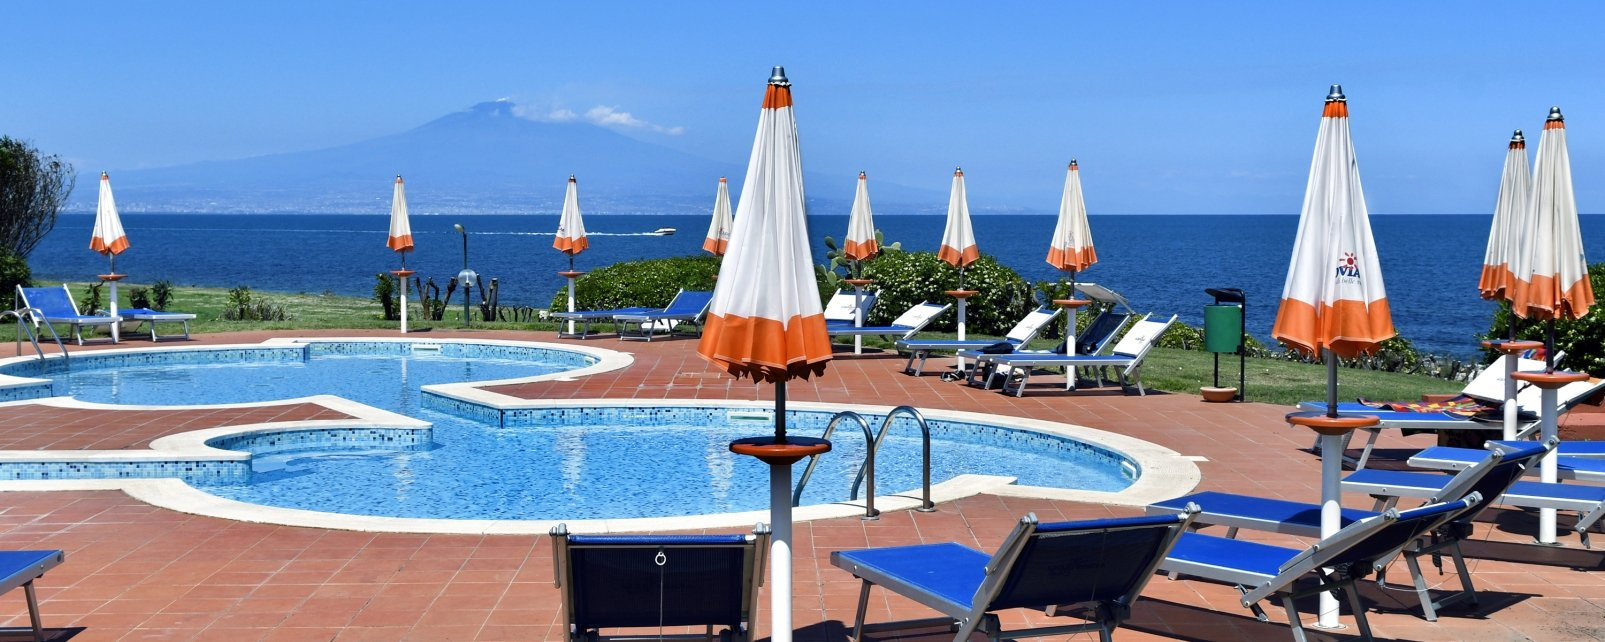 Club Marmara Brucoli Village